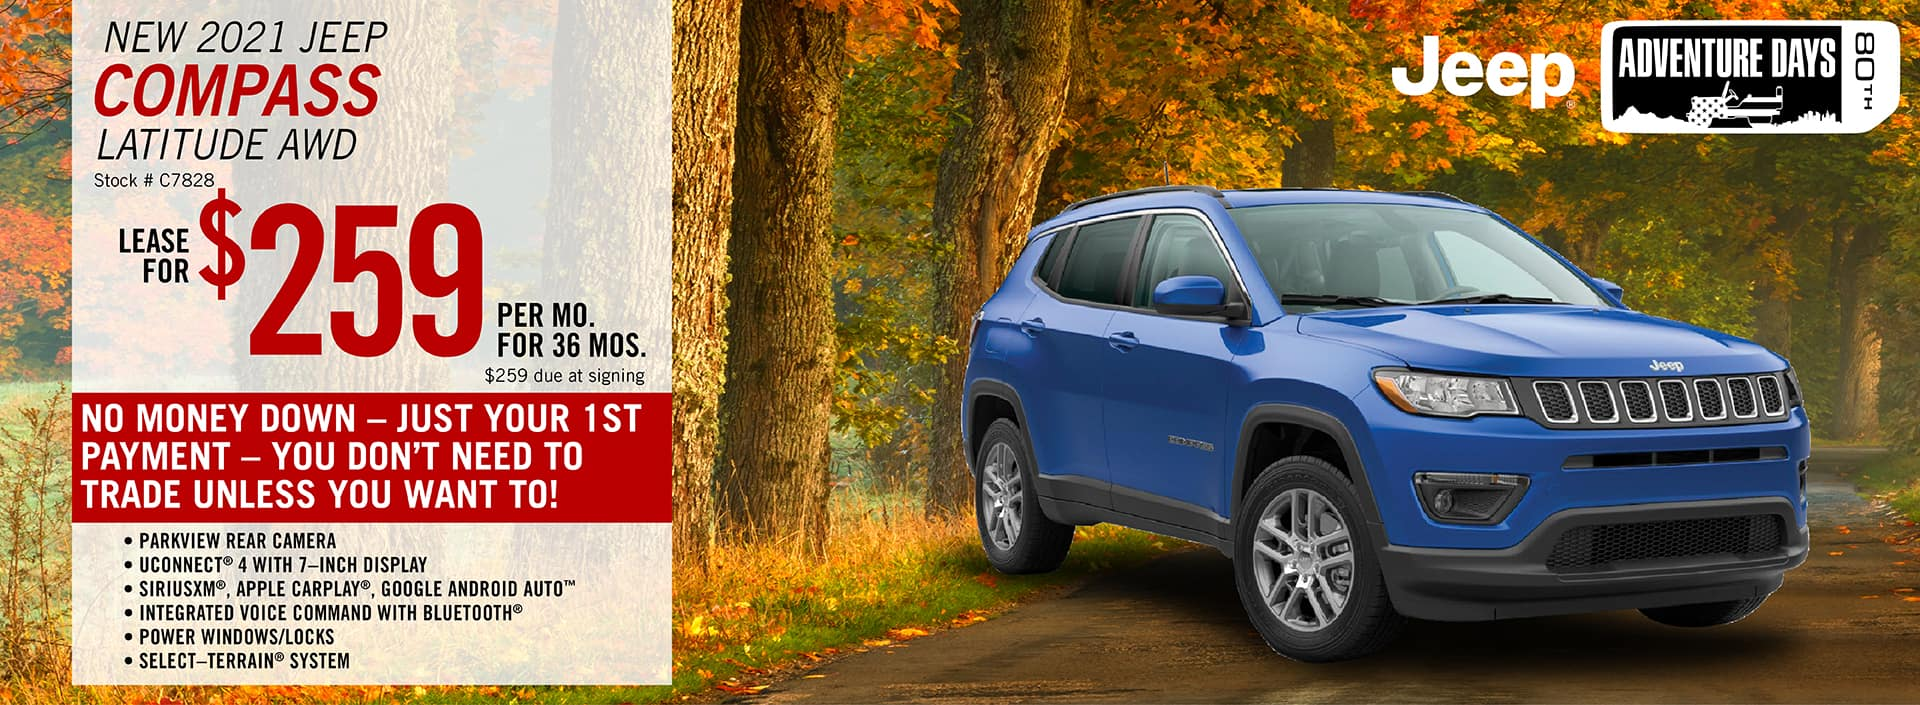 2020 Jeep Compass Lease Offer | Barre, VT